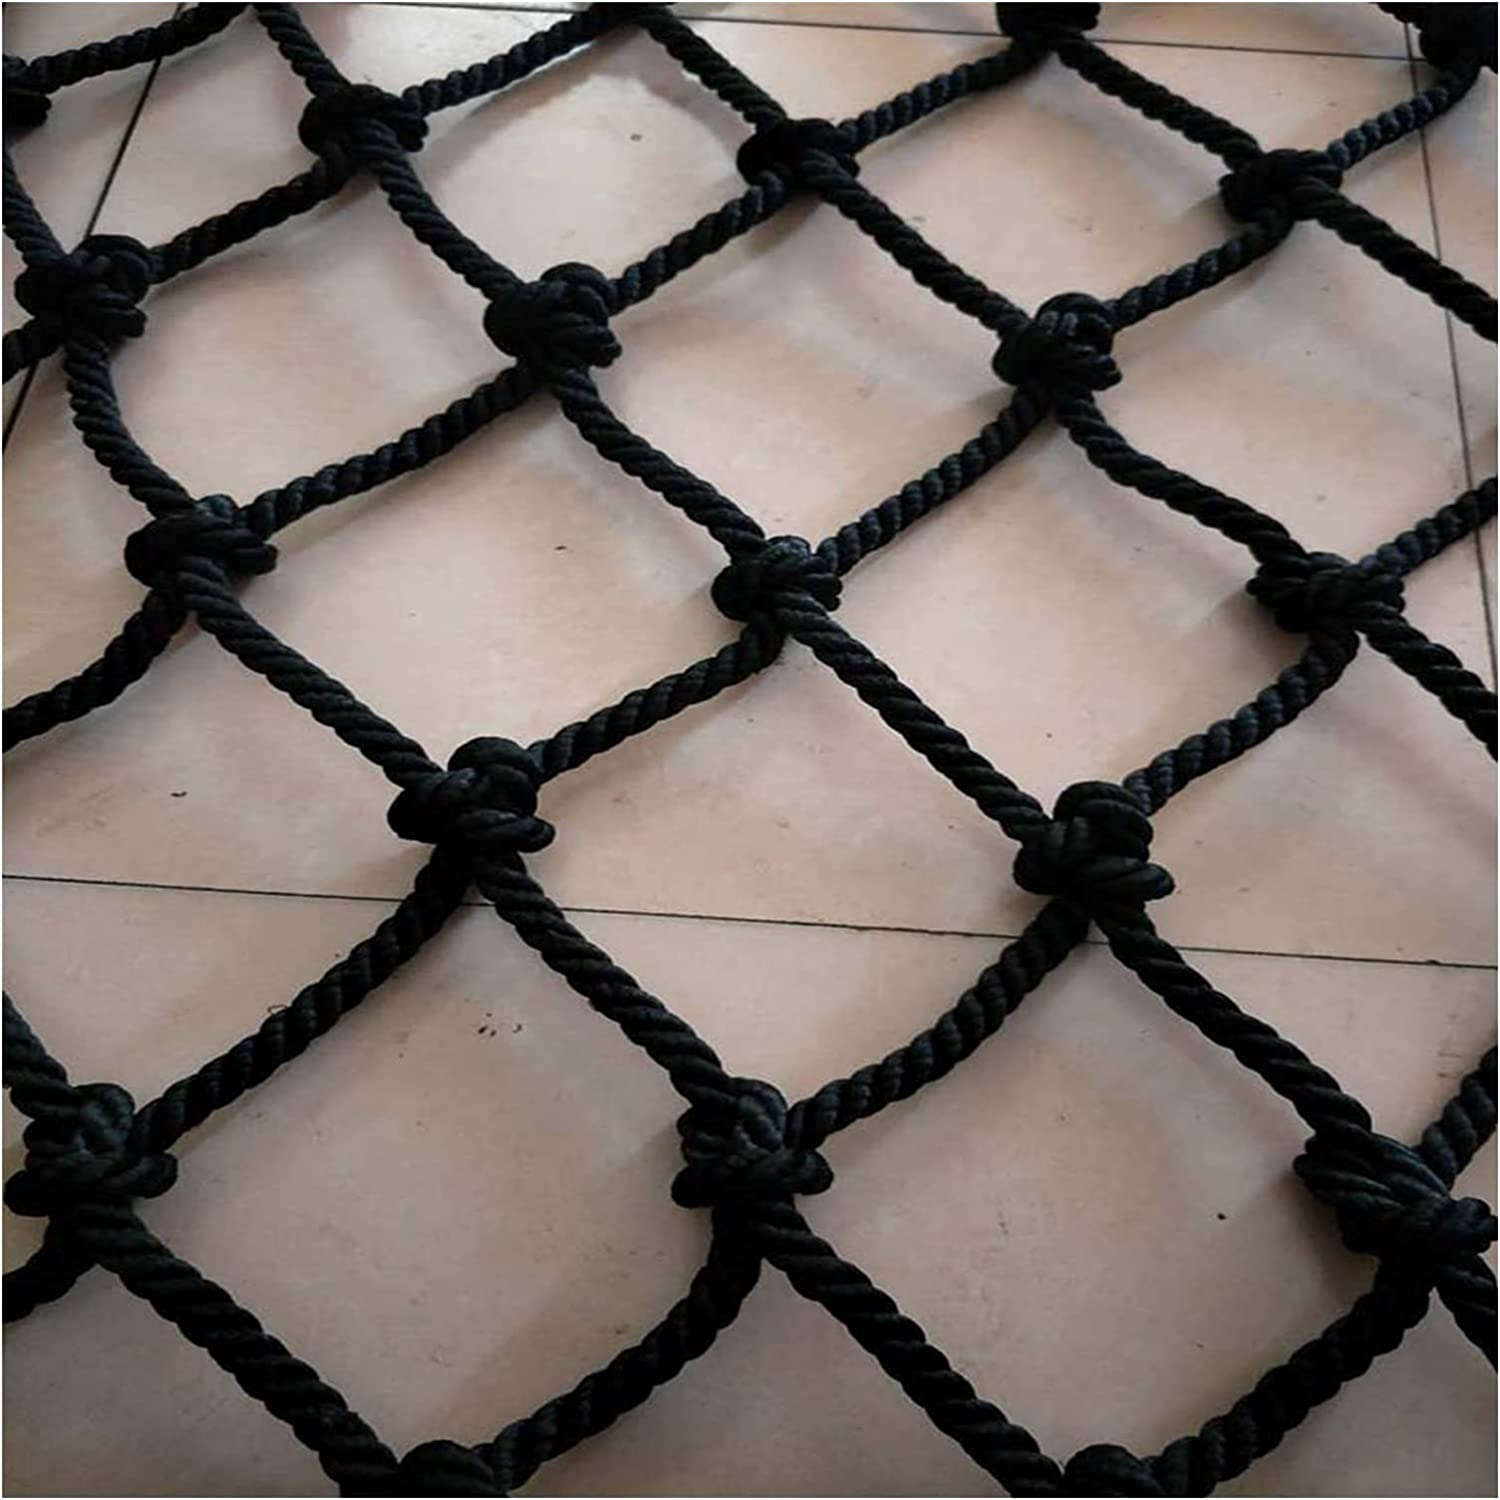 AWSAD Child Safety Popular popular Net Safety and trust Railing Stairs Outdoor Bal Netting